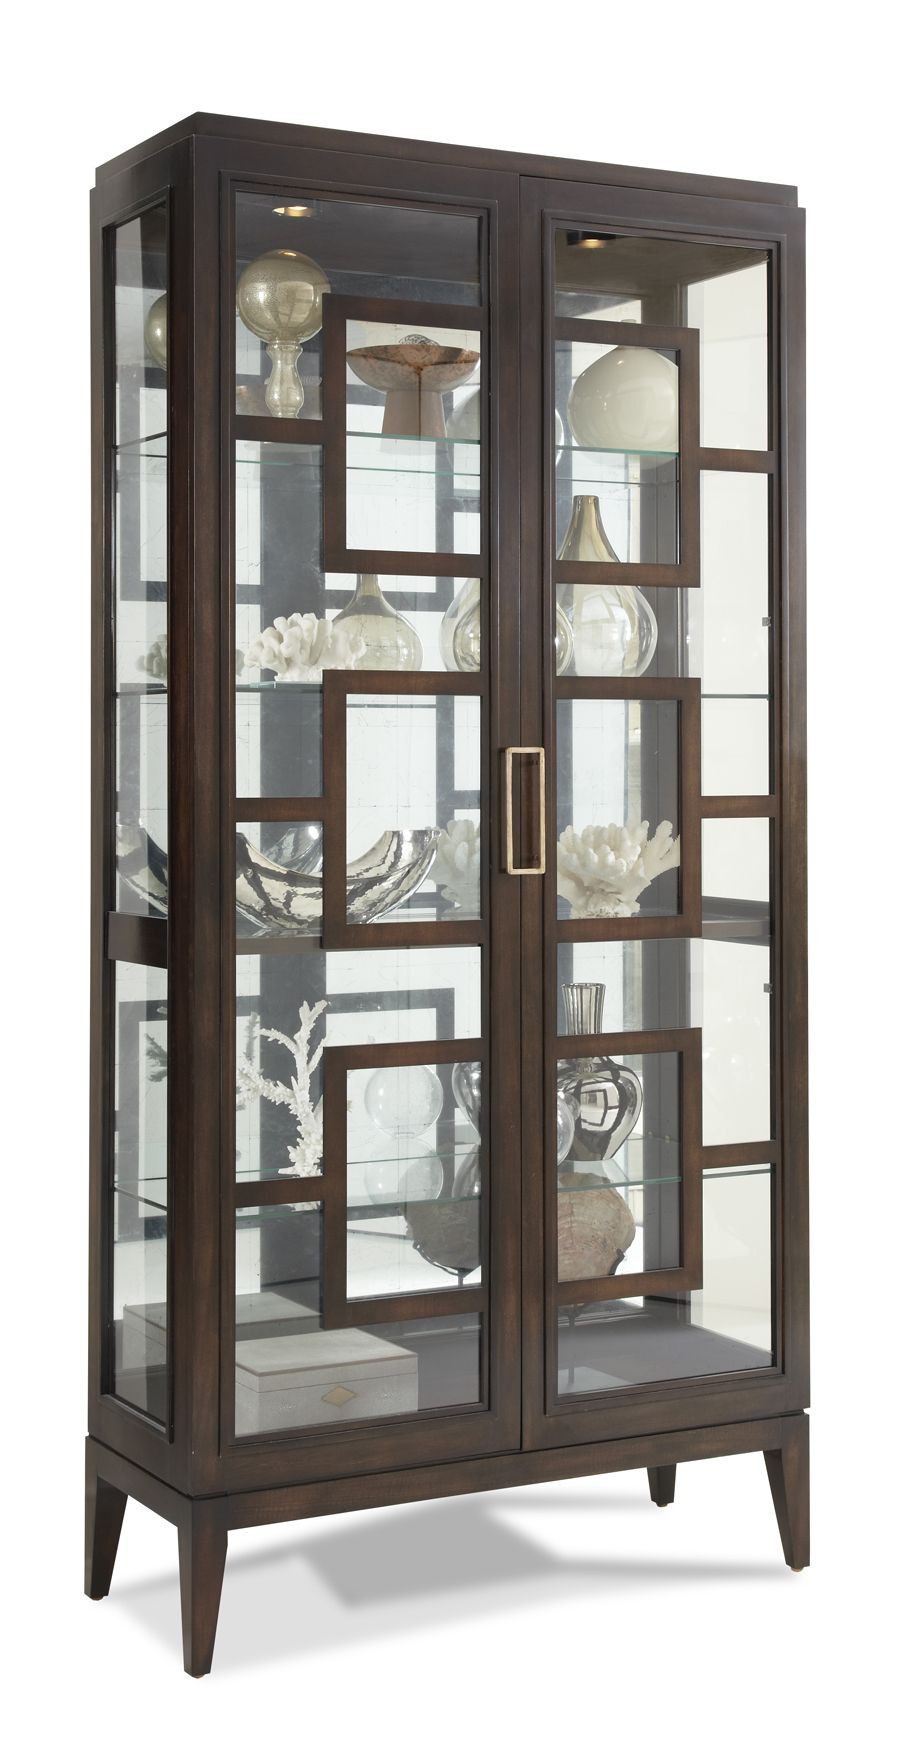 Glass crockery unit with heavy detailing